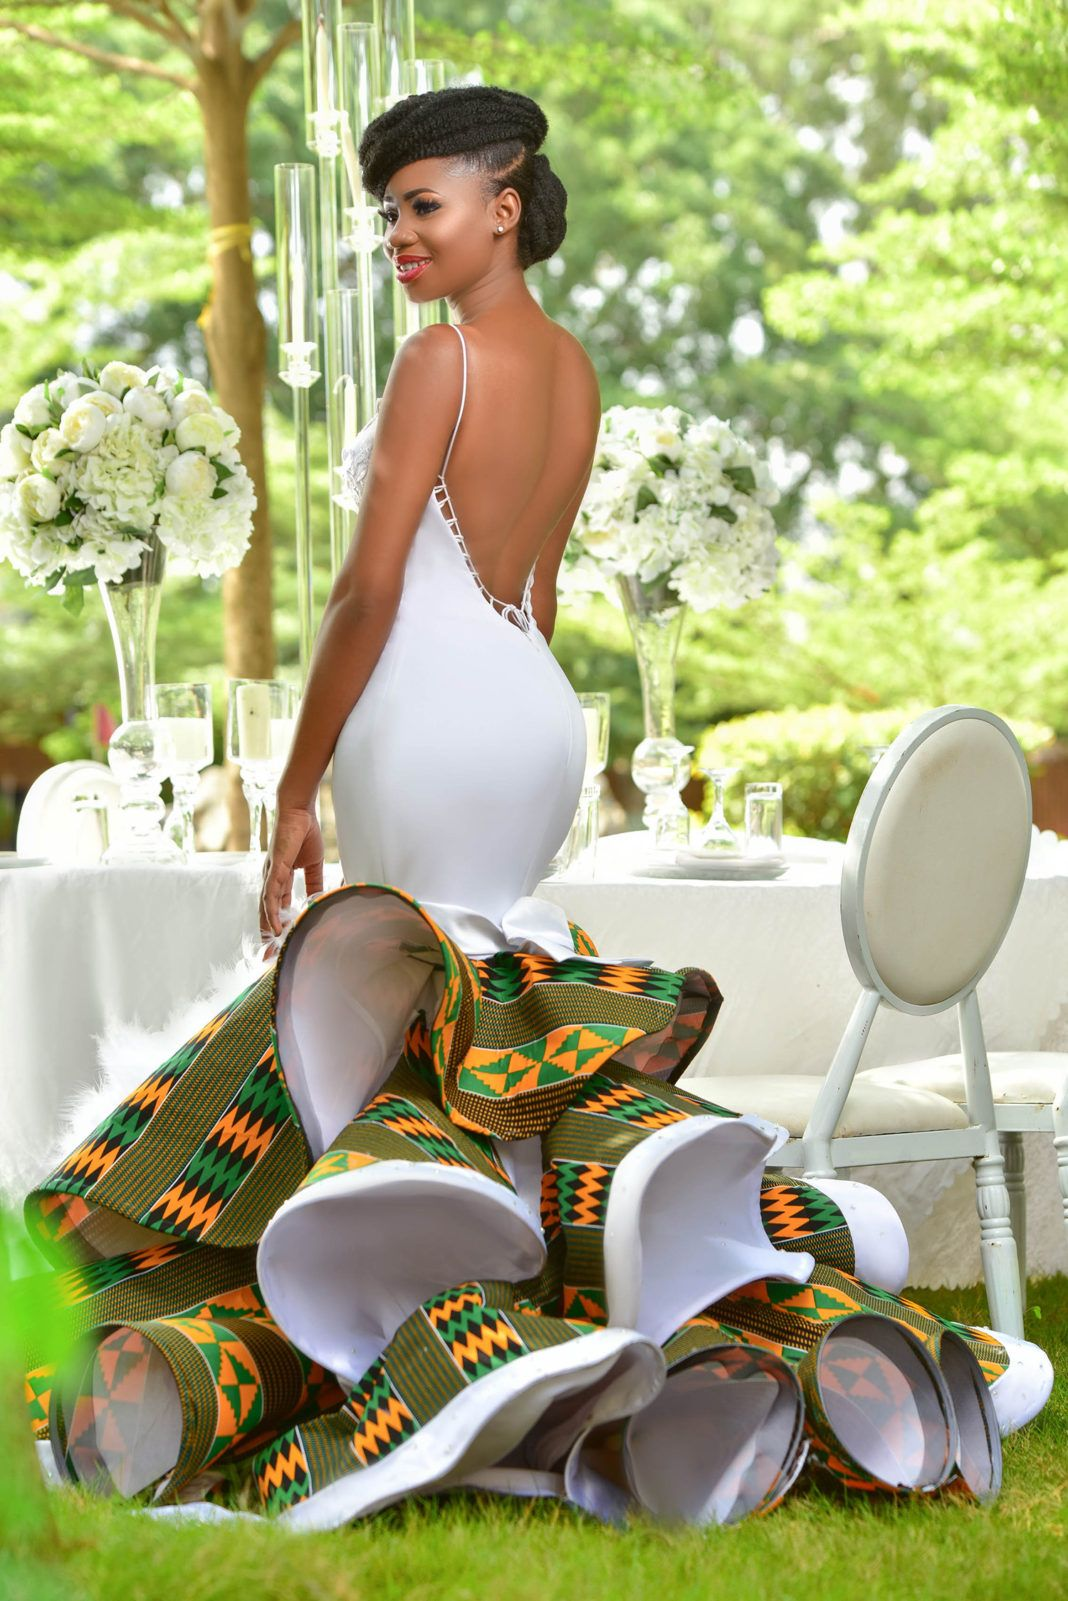 VIDEO: Ghanaian Designer Brand Avonsige Goes Viral With Jaw Dropping Kente Wedding Dress! A Bride Must Have #africanfashion